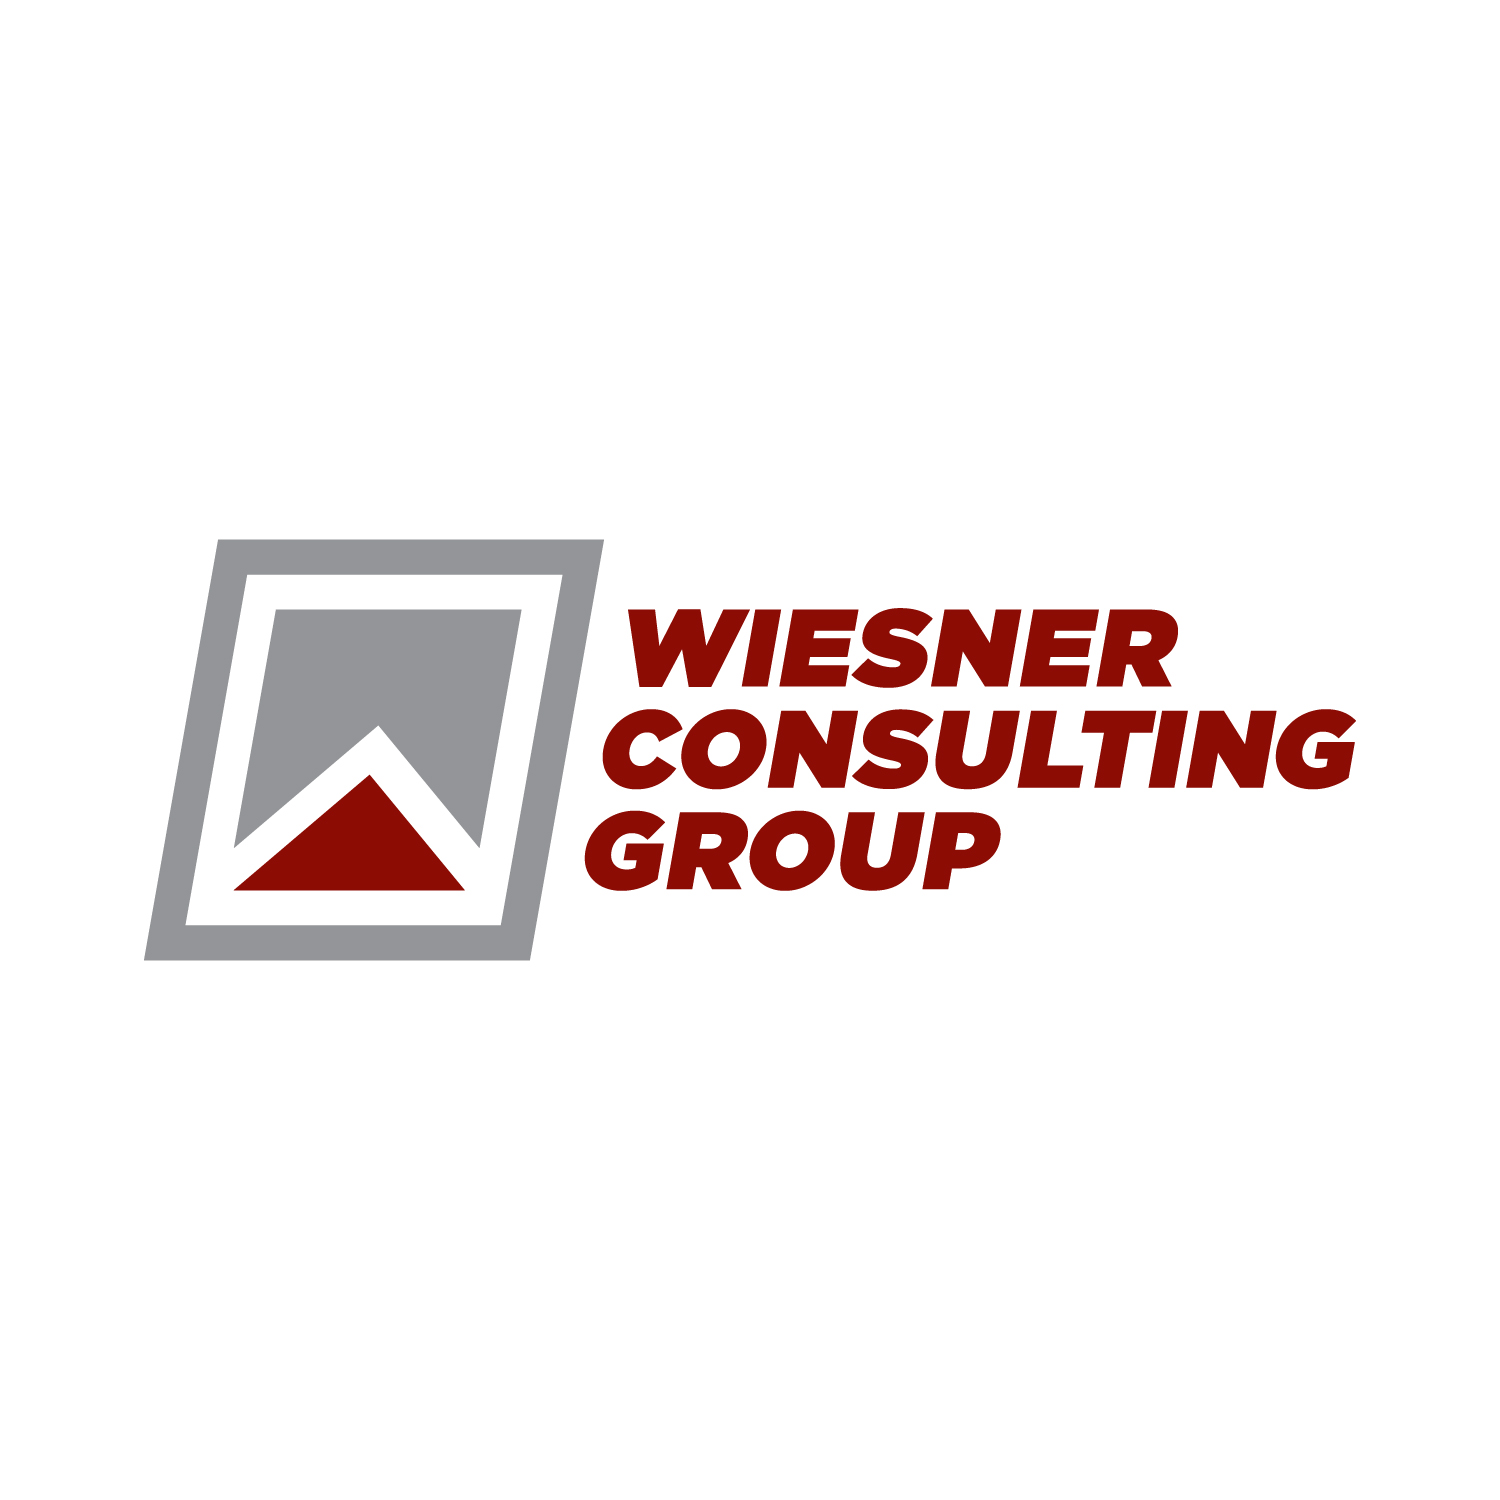 Wiesner Consulting Group